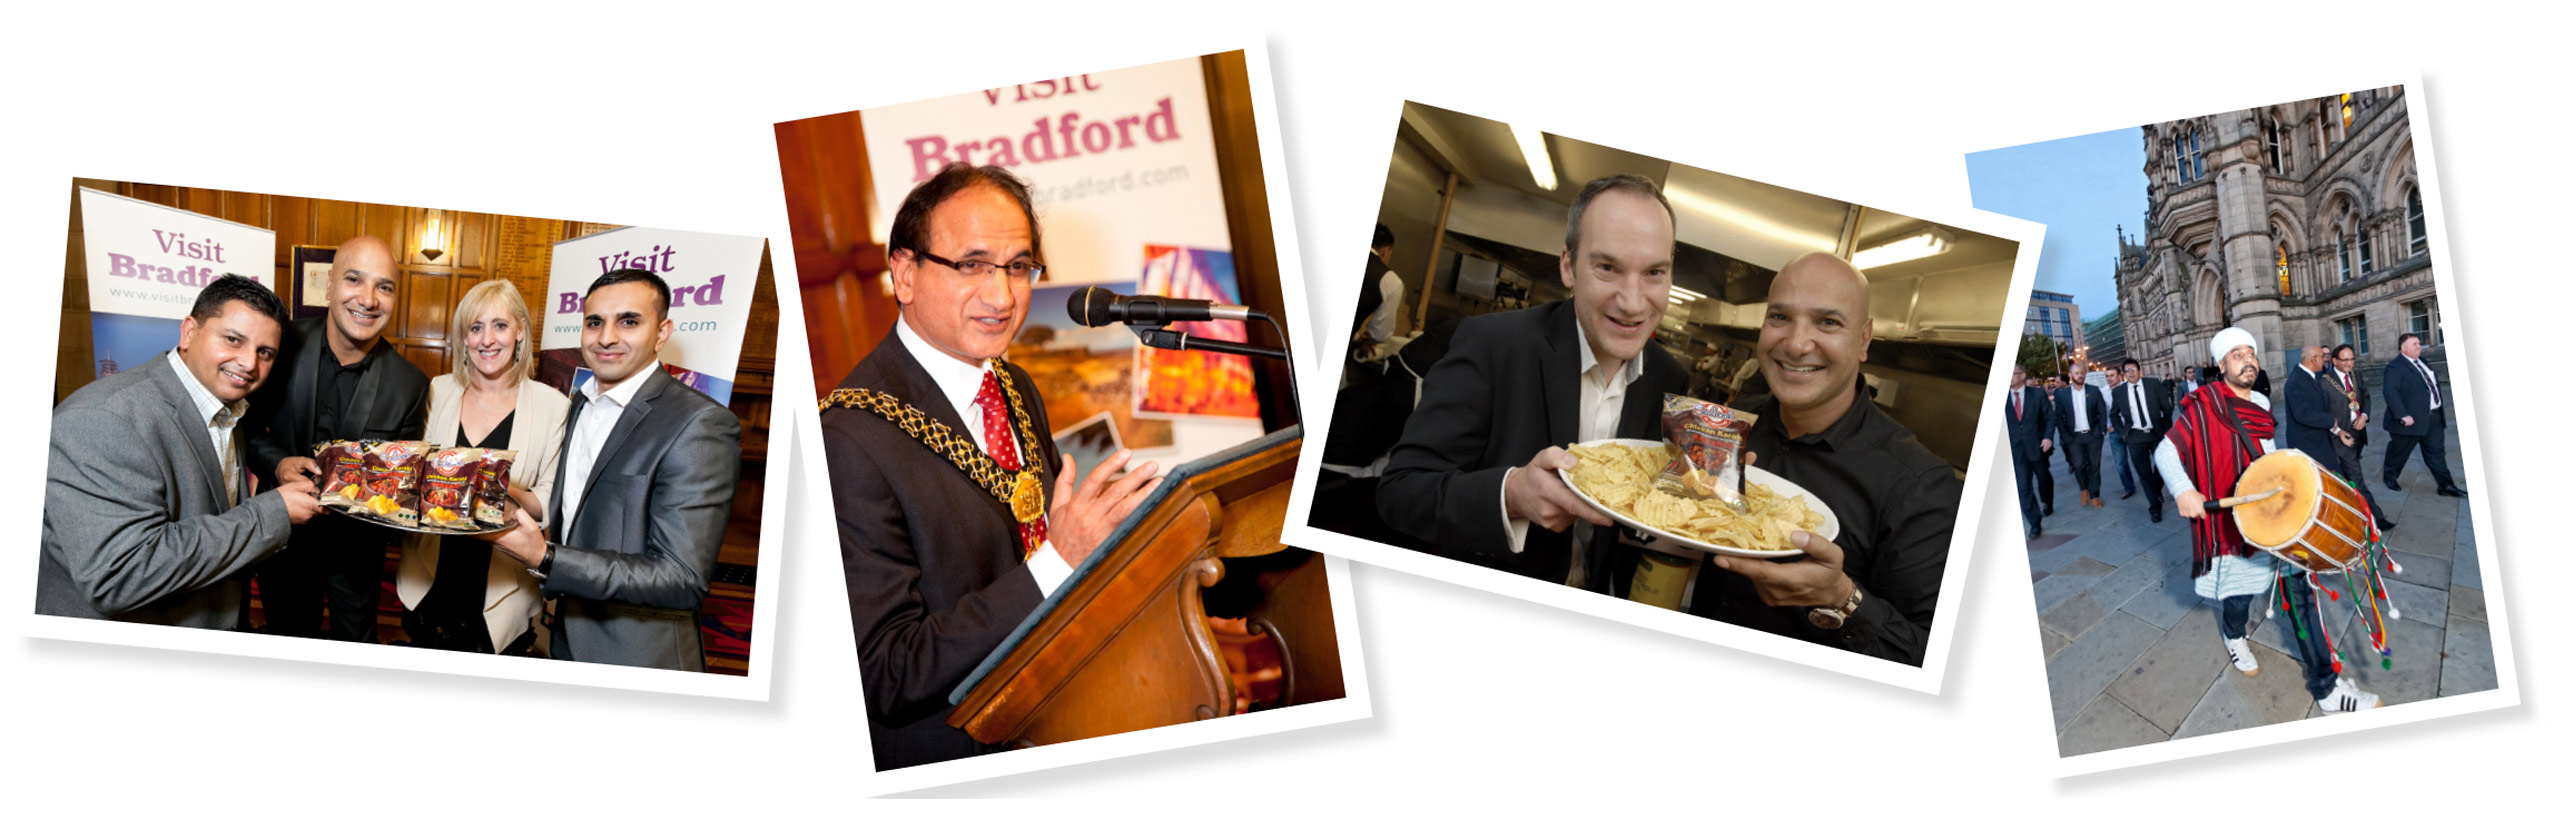 Bradford Curry Capital Media Relations Communication Campaign